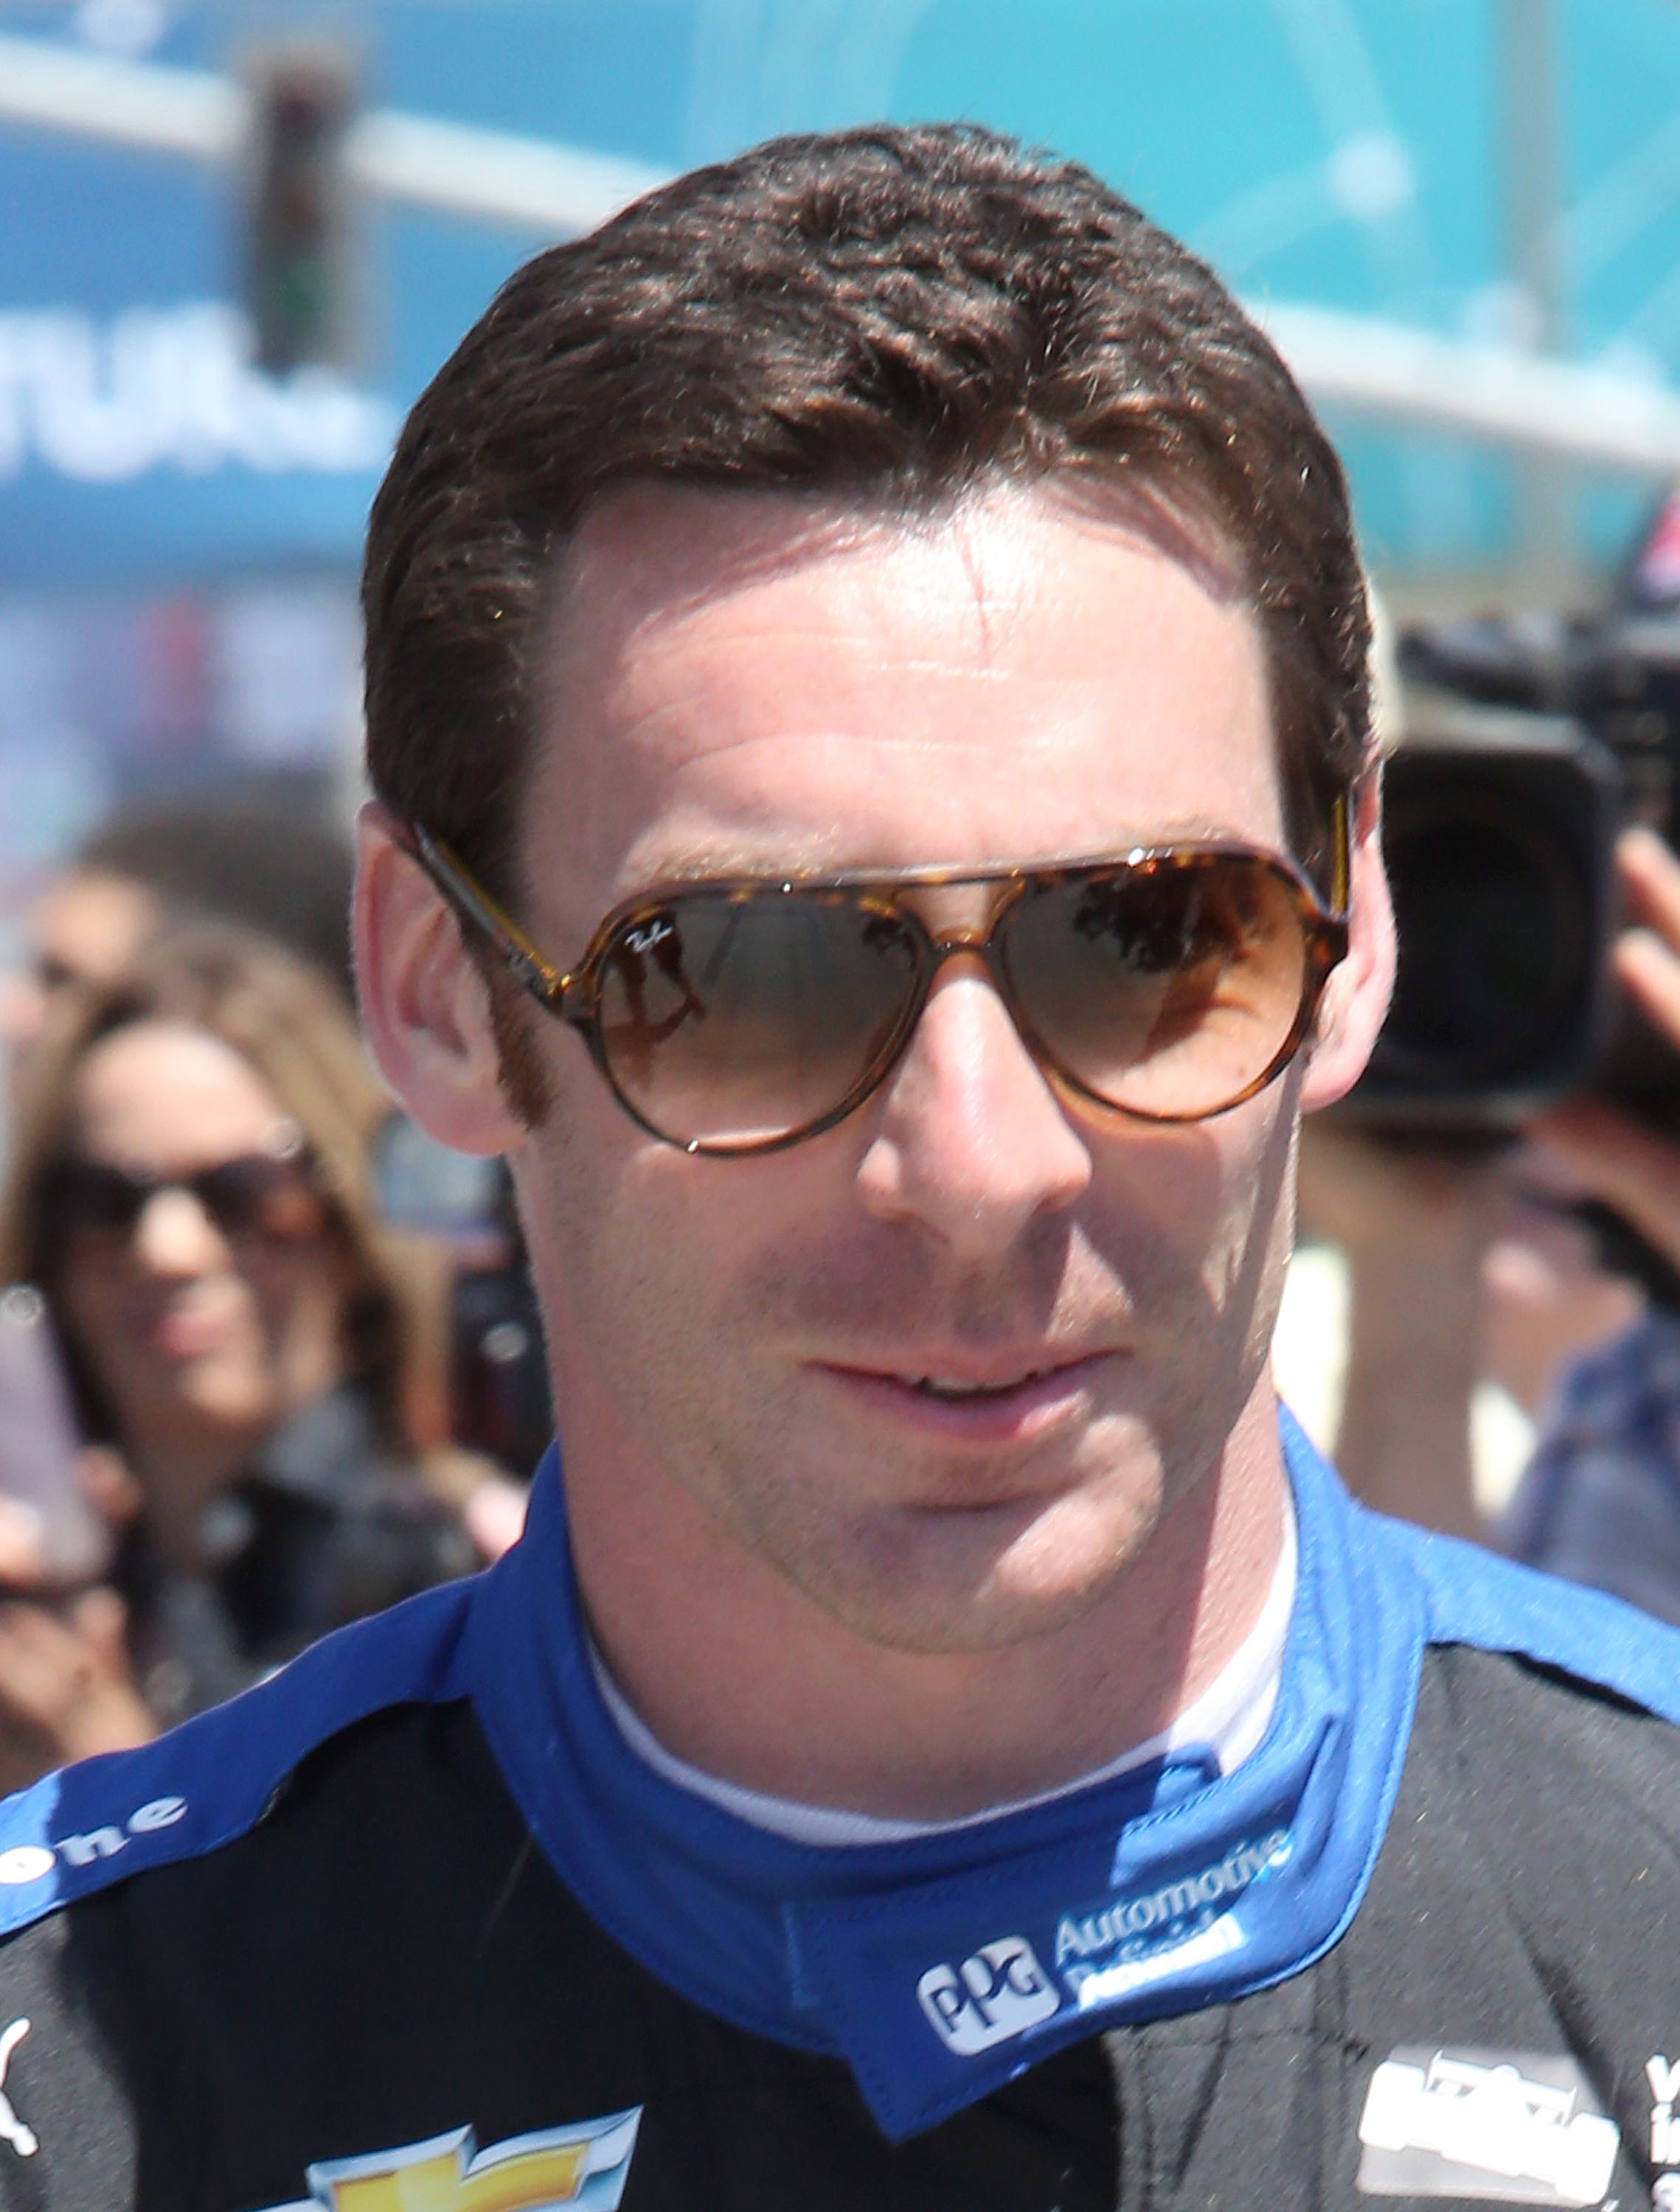 LONG BEACH, CA - APRIL 17: Simon Pagenaud is the winner of the 42nd Toyota Grand Prix of Long Beach on April 17, 2016 in Long Beach, California.   Frederick M. Brown/Getty Images/AFP